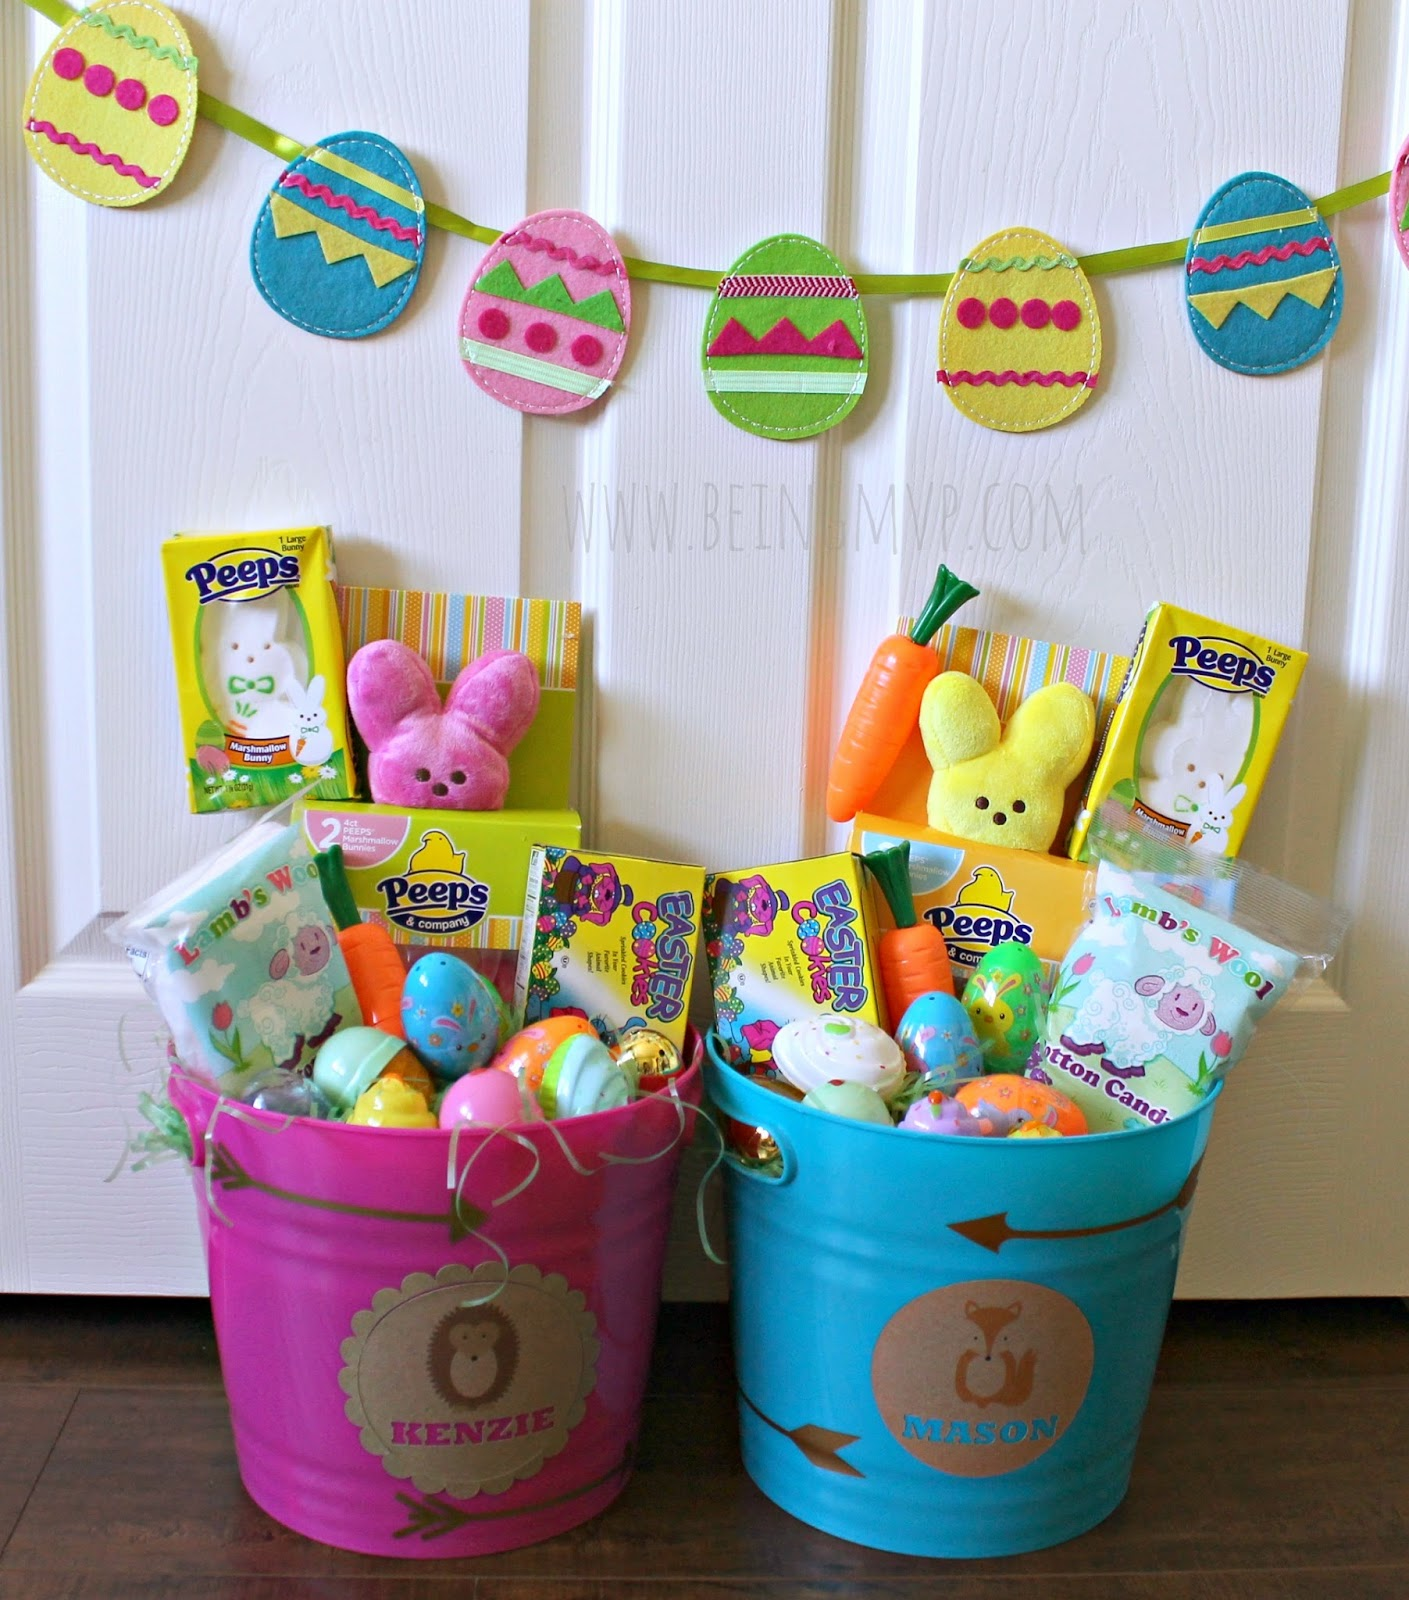 Being mvp easter basket ideas for little kids orientaltrading easter basket ideas for little kids orientaltrading negle Choice Image